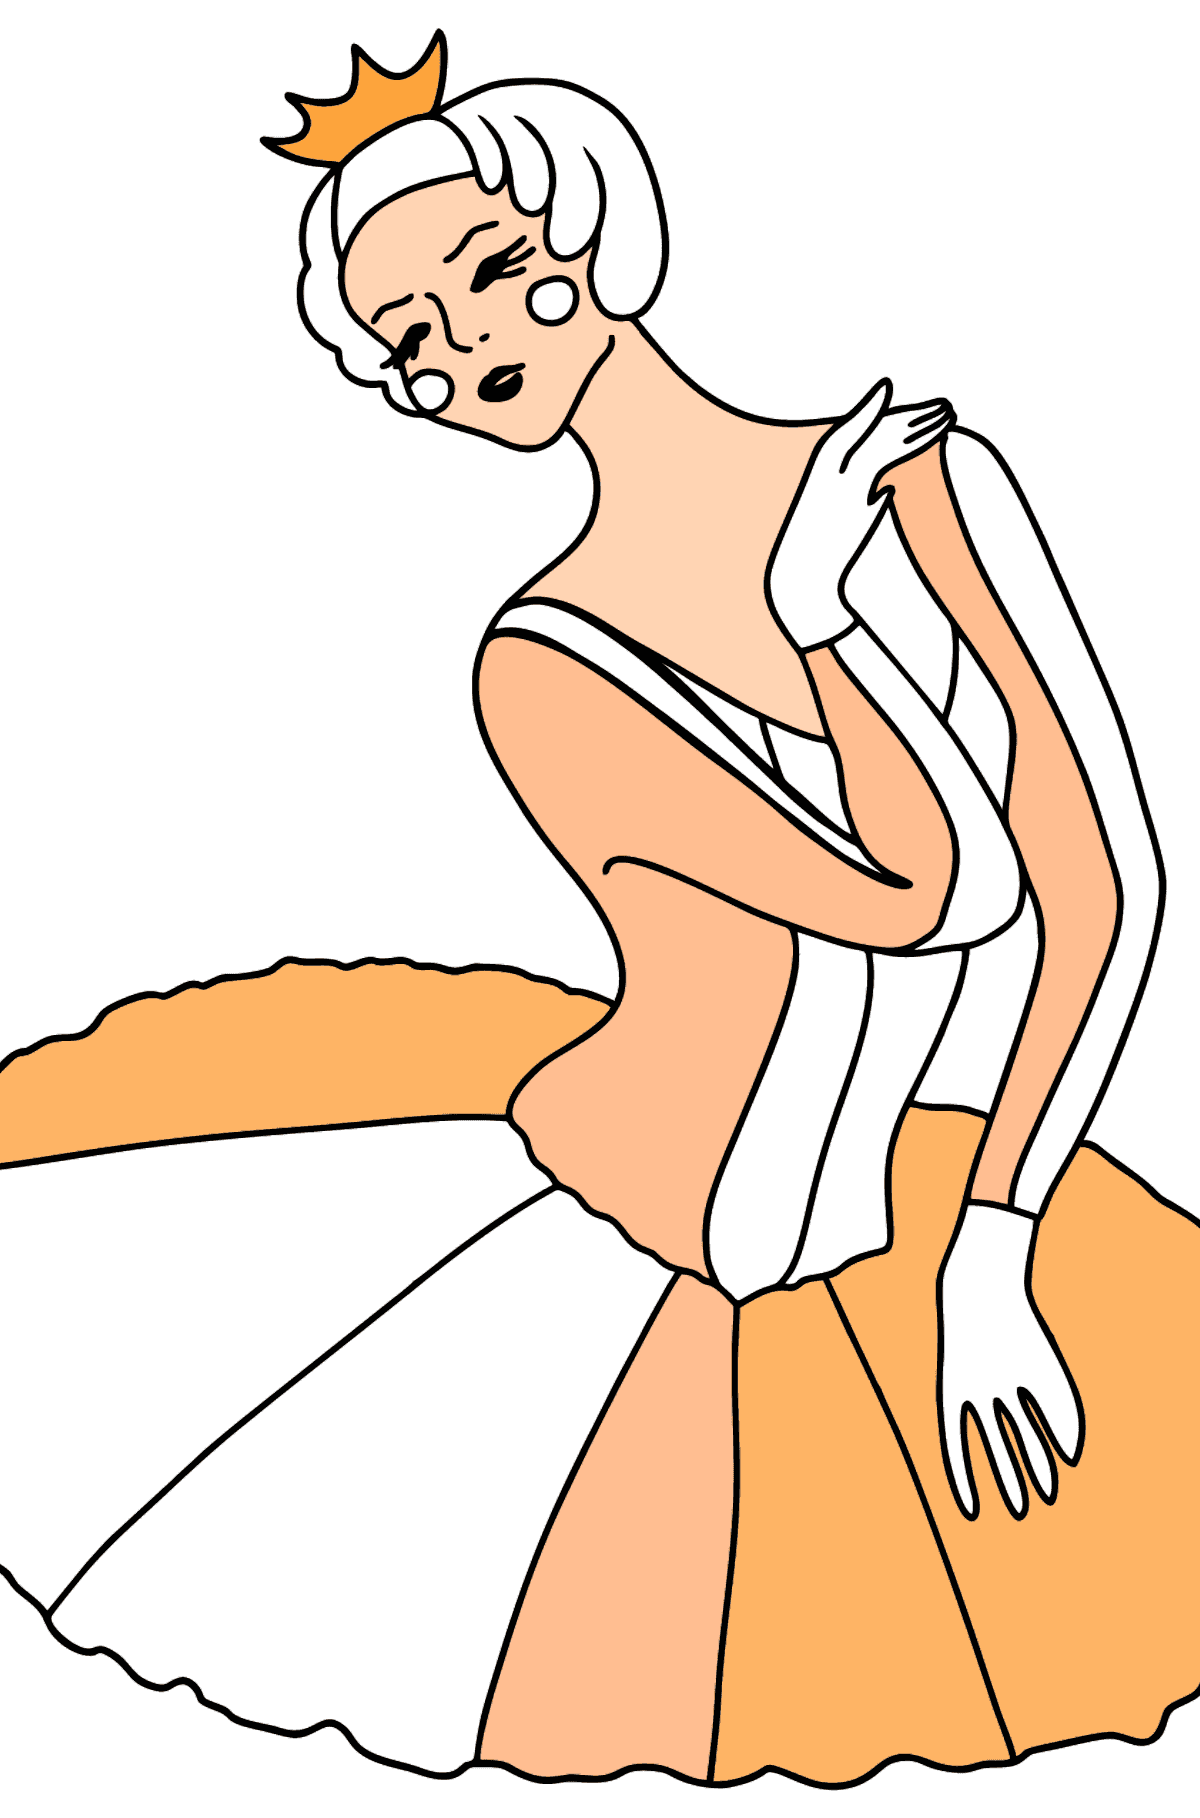 Ballerina in Tutu Skirt coloring page - Coloring Pages for Kids